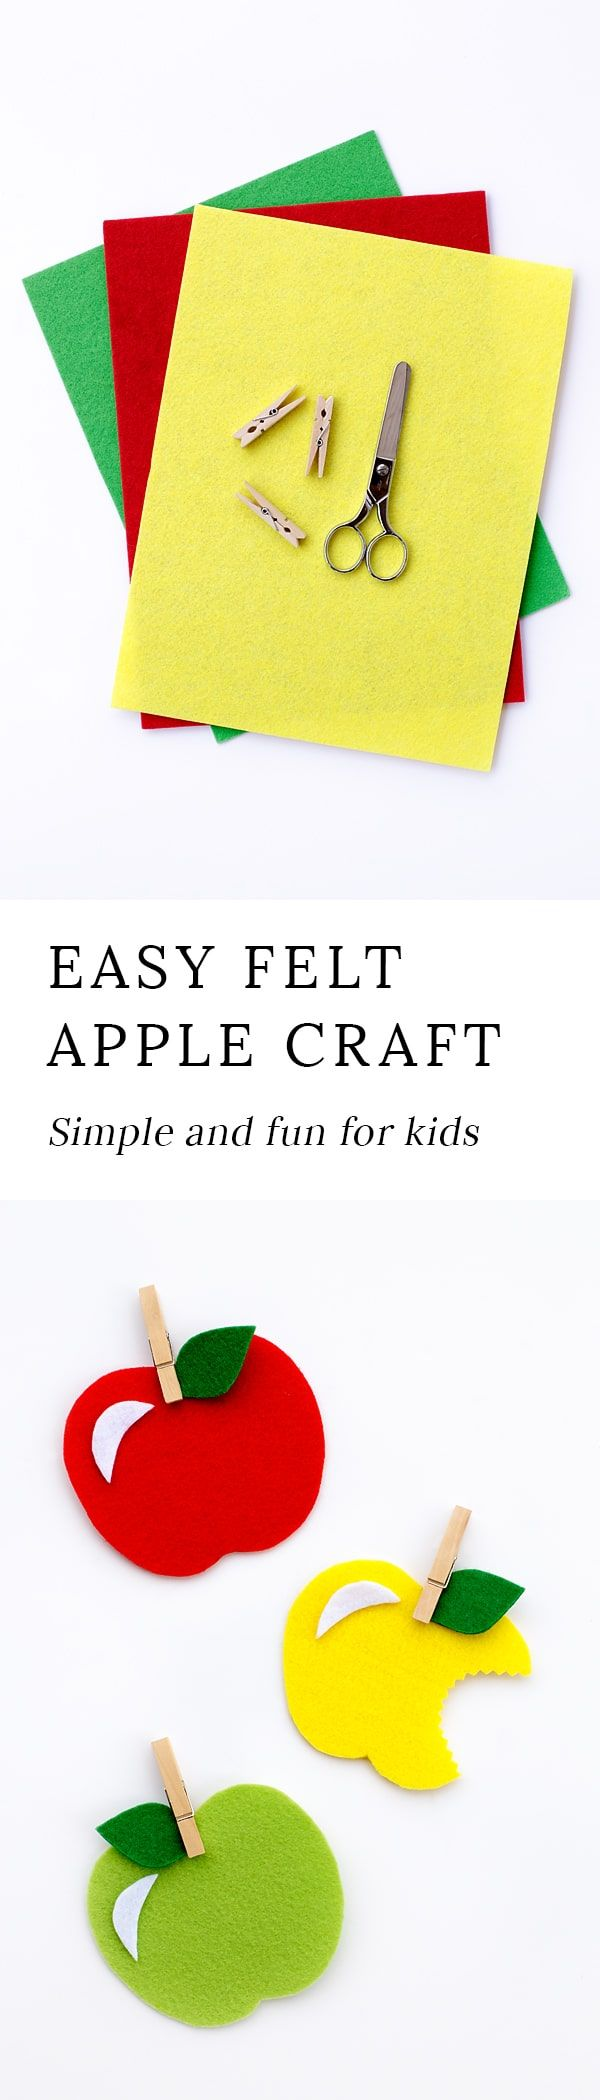 Sweet and simple, this Felt Apple Craft is fun for kids of all ages. Colorful felt apples can be used as gift tags, refrigerator magnets, holiday ornaments, or fall decor. They are even cute for a child's play kitchen! This post includes a free printable template. via @https://www.pinterest.com/fireflymudpie/